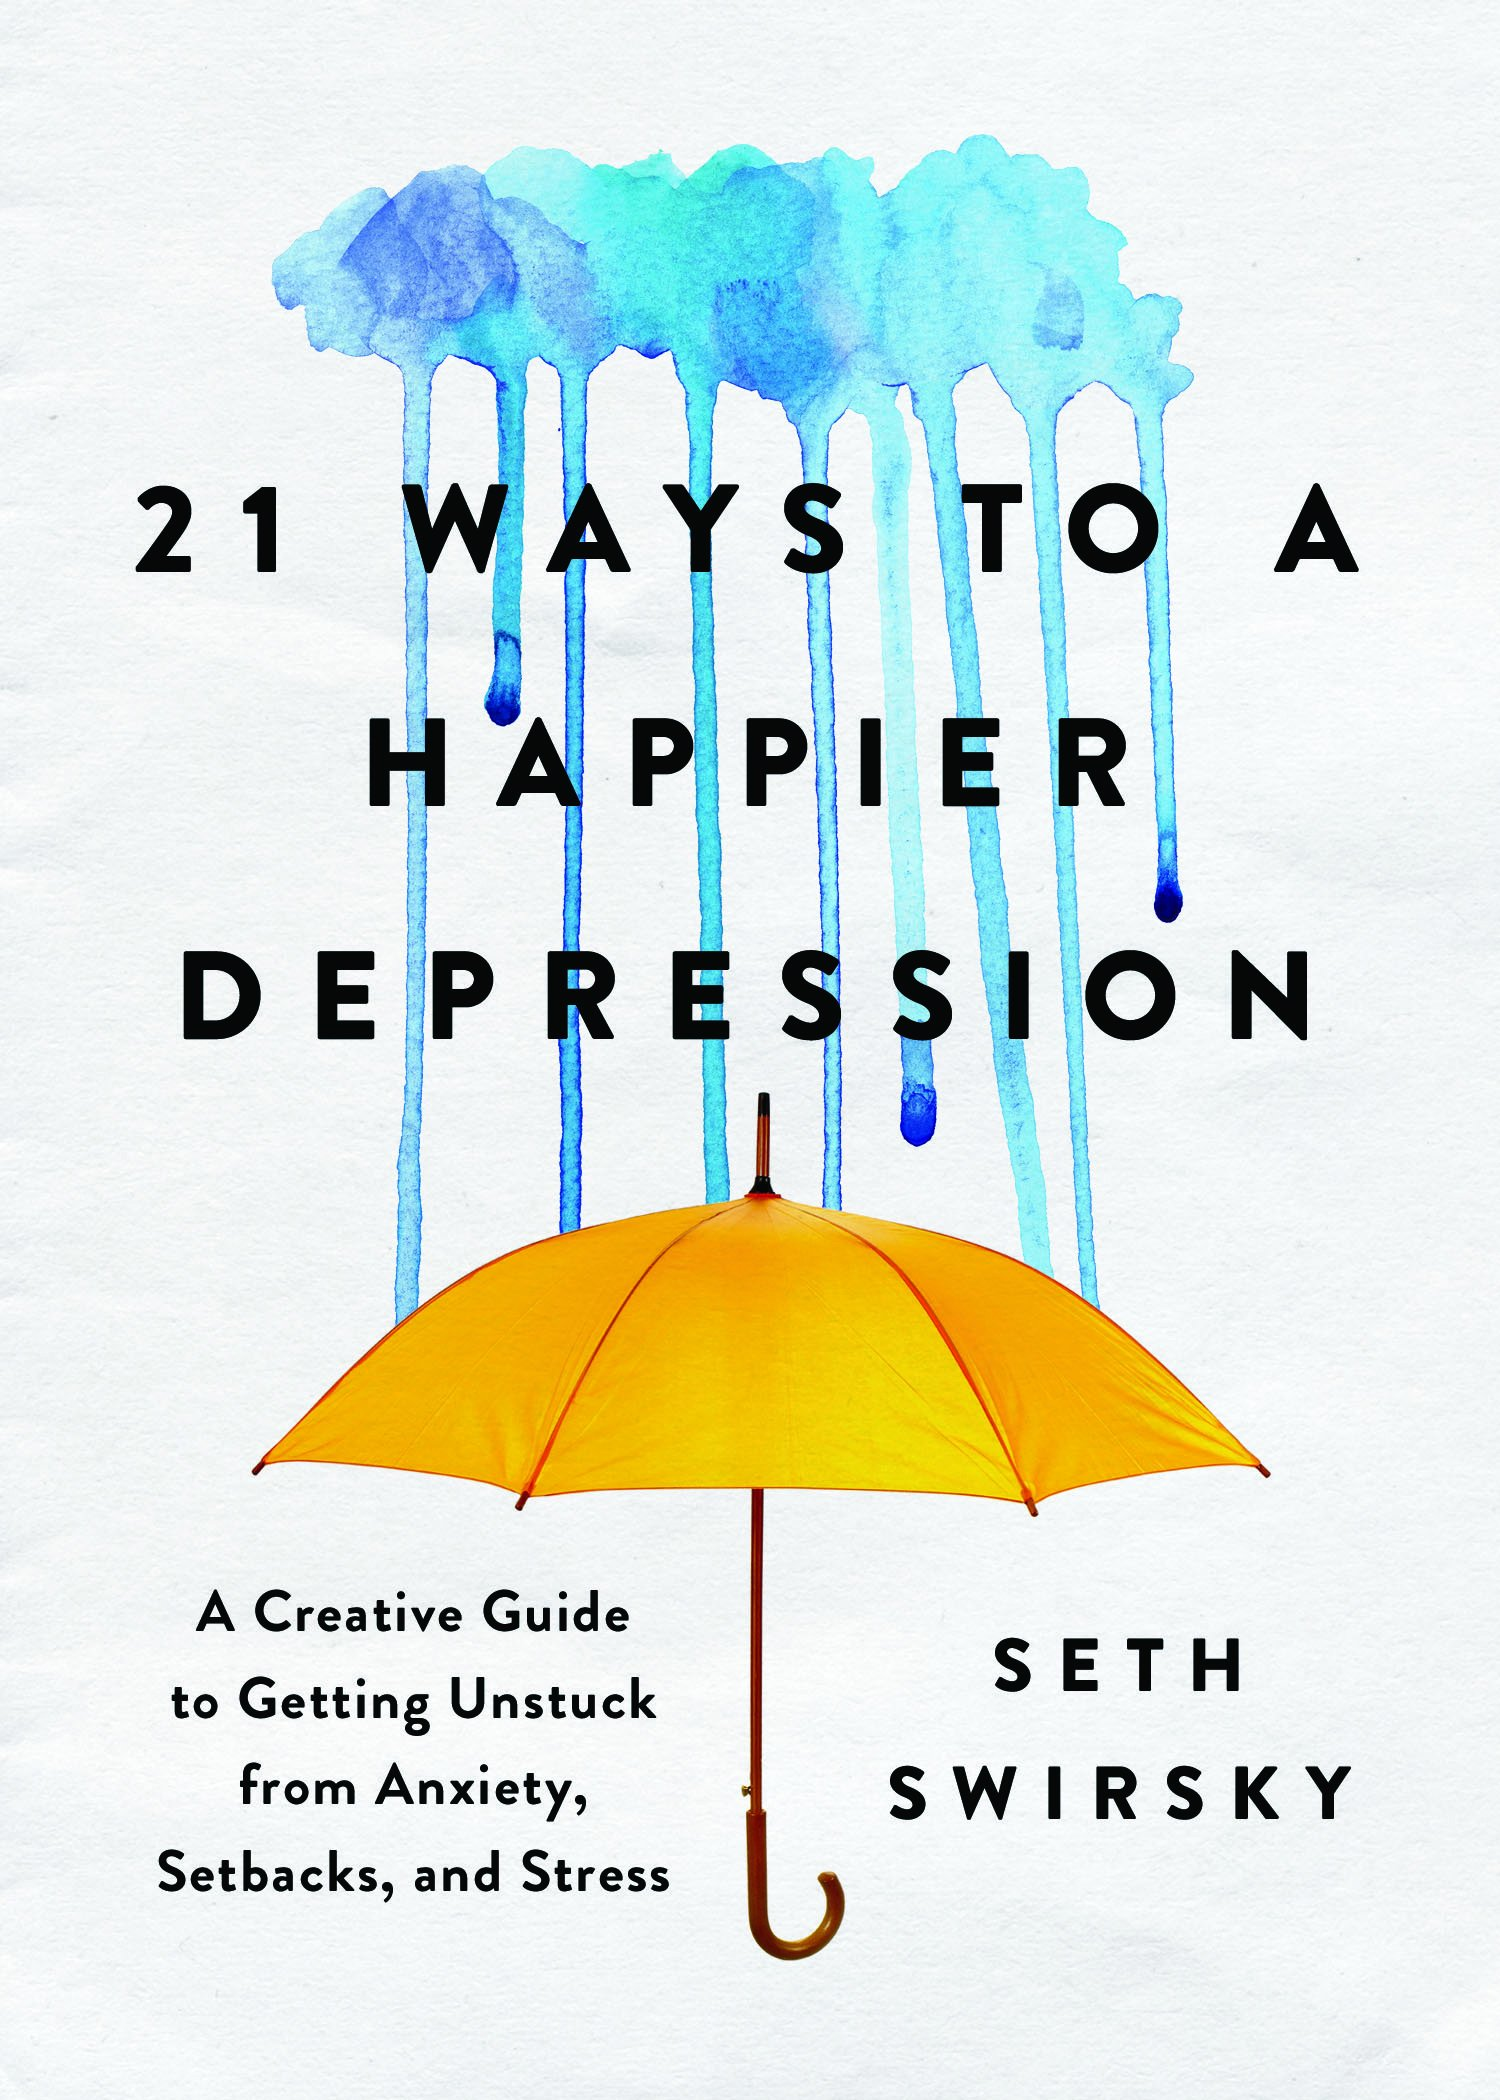 21 ways to a happier depression a creative guide to getting 21 ways to a happier depression a creative guide to getting unstuck from anxiety setbacks and stress seth swirsky 0760789263941 amazon books fandeluxe Image collections